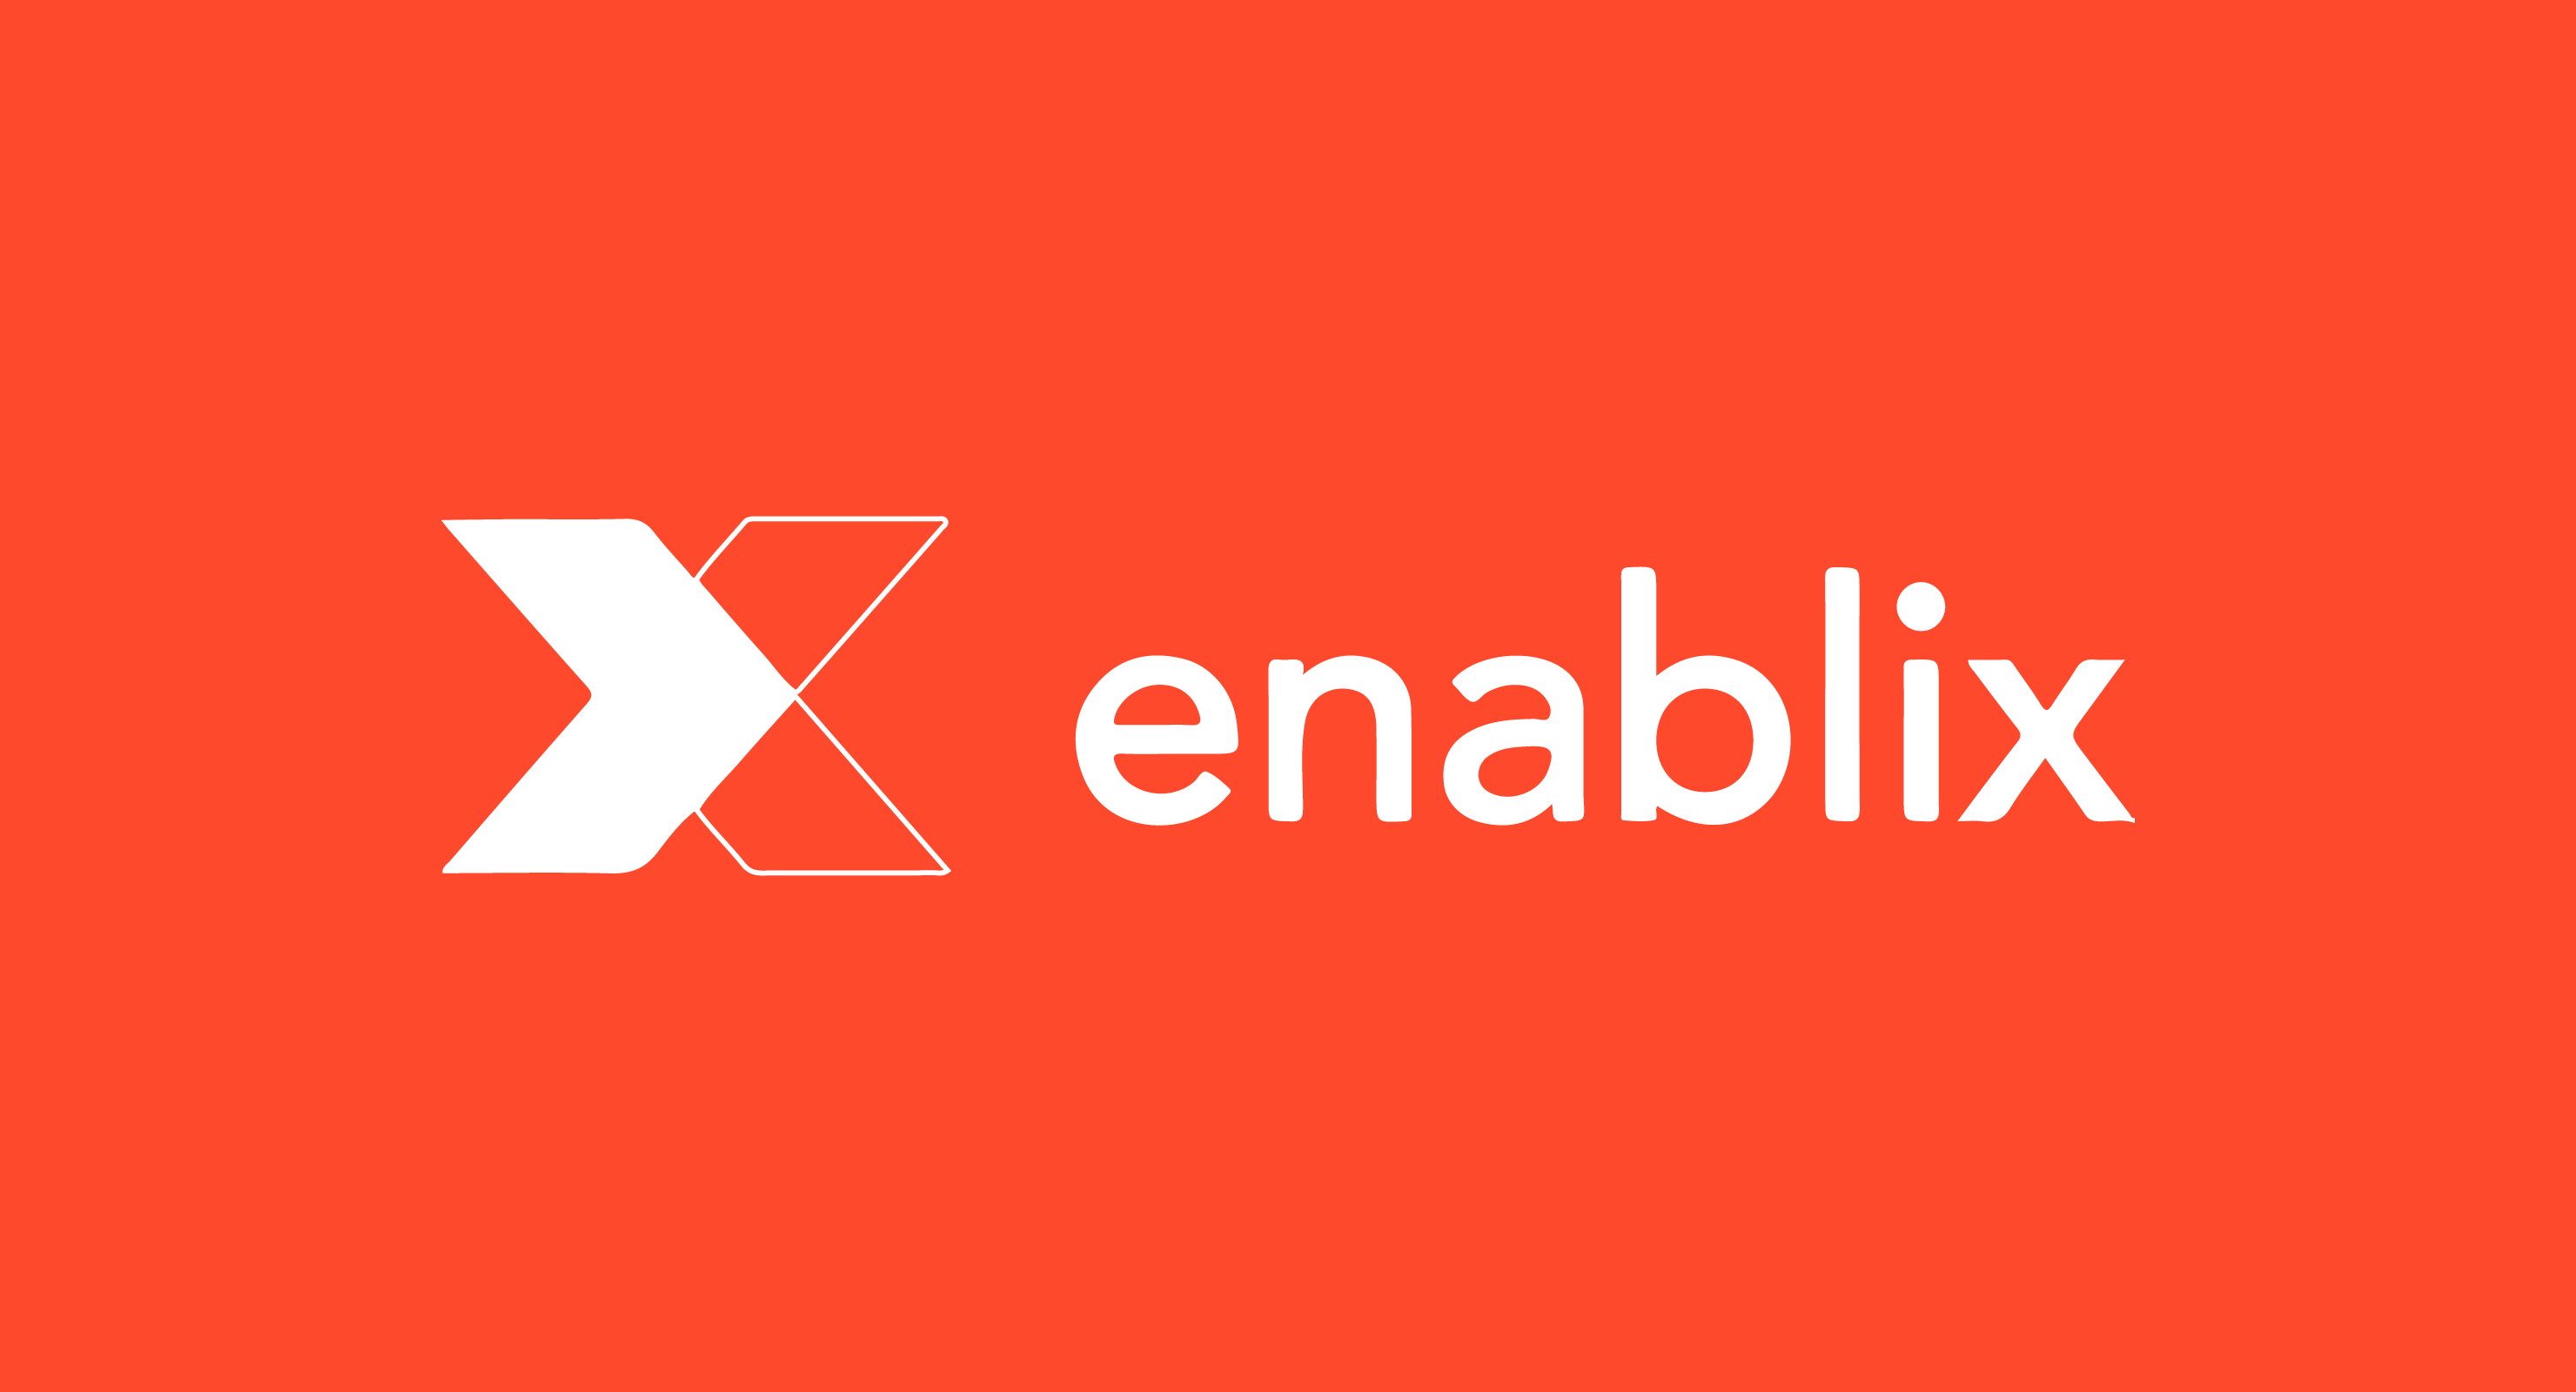 Enablix Uses G2 Profile to Reach New Customers and Boost Brand Awareness